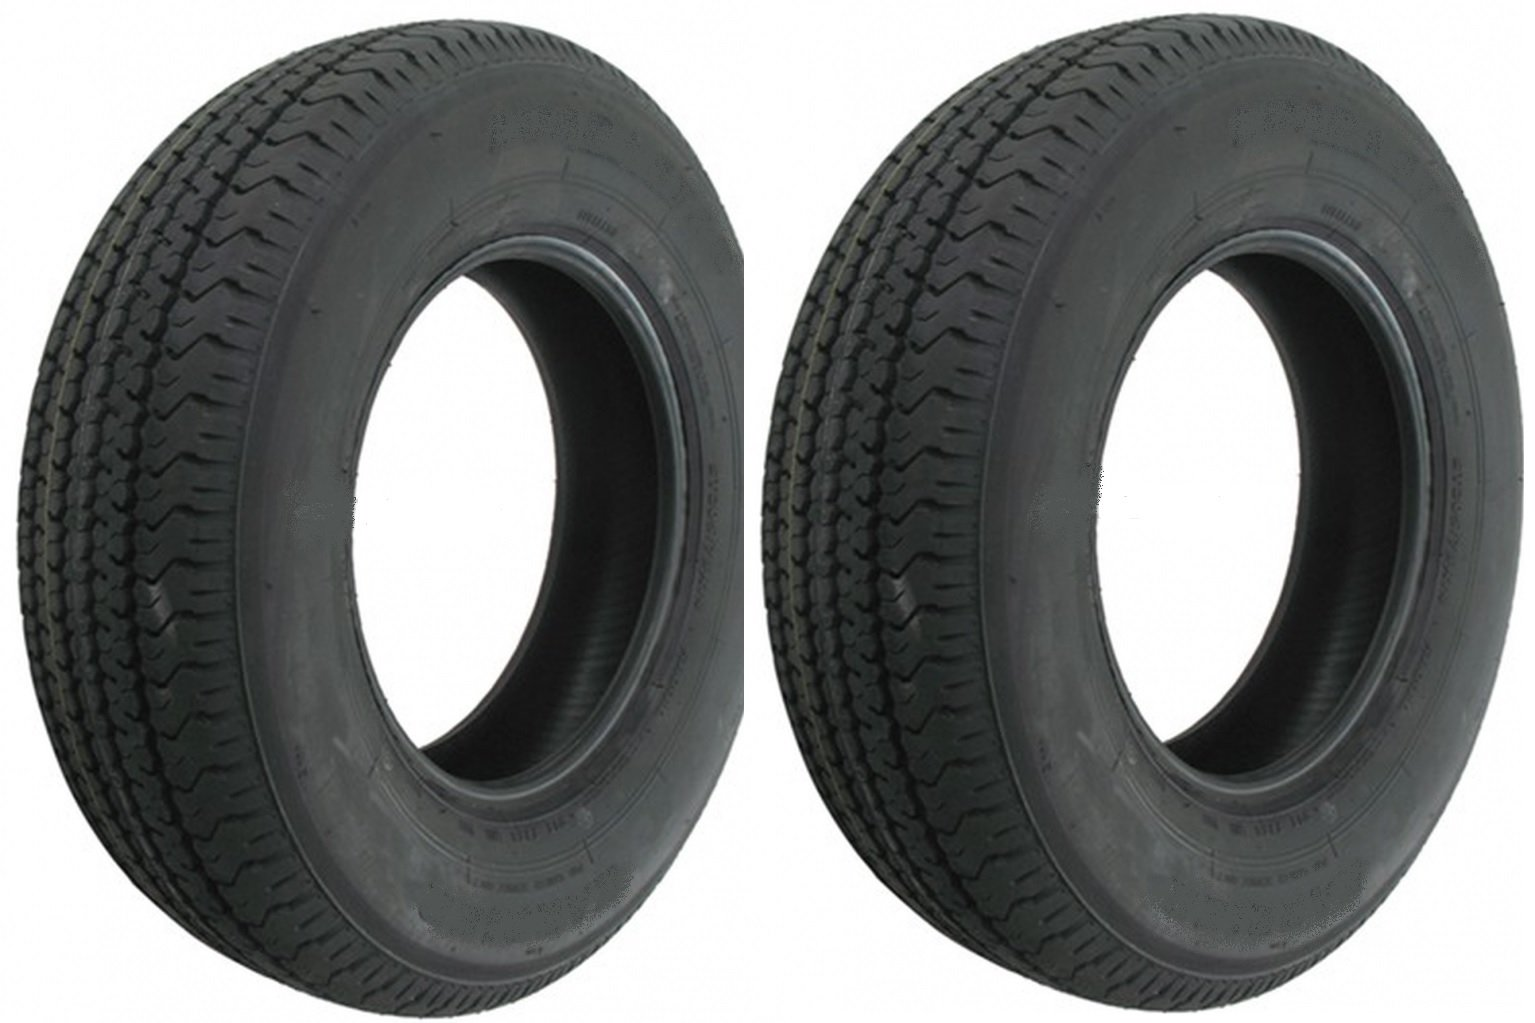 Two Trailer Tires ST185/80D13 185/80D-13 13'' ST 185 80 D 13 Boat Camper RV Spare